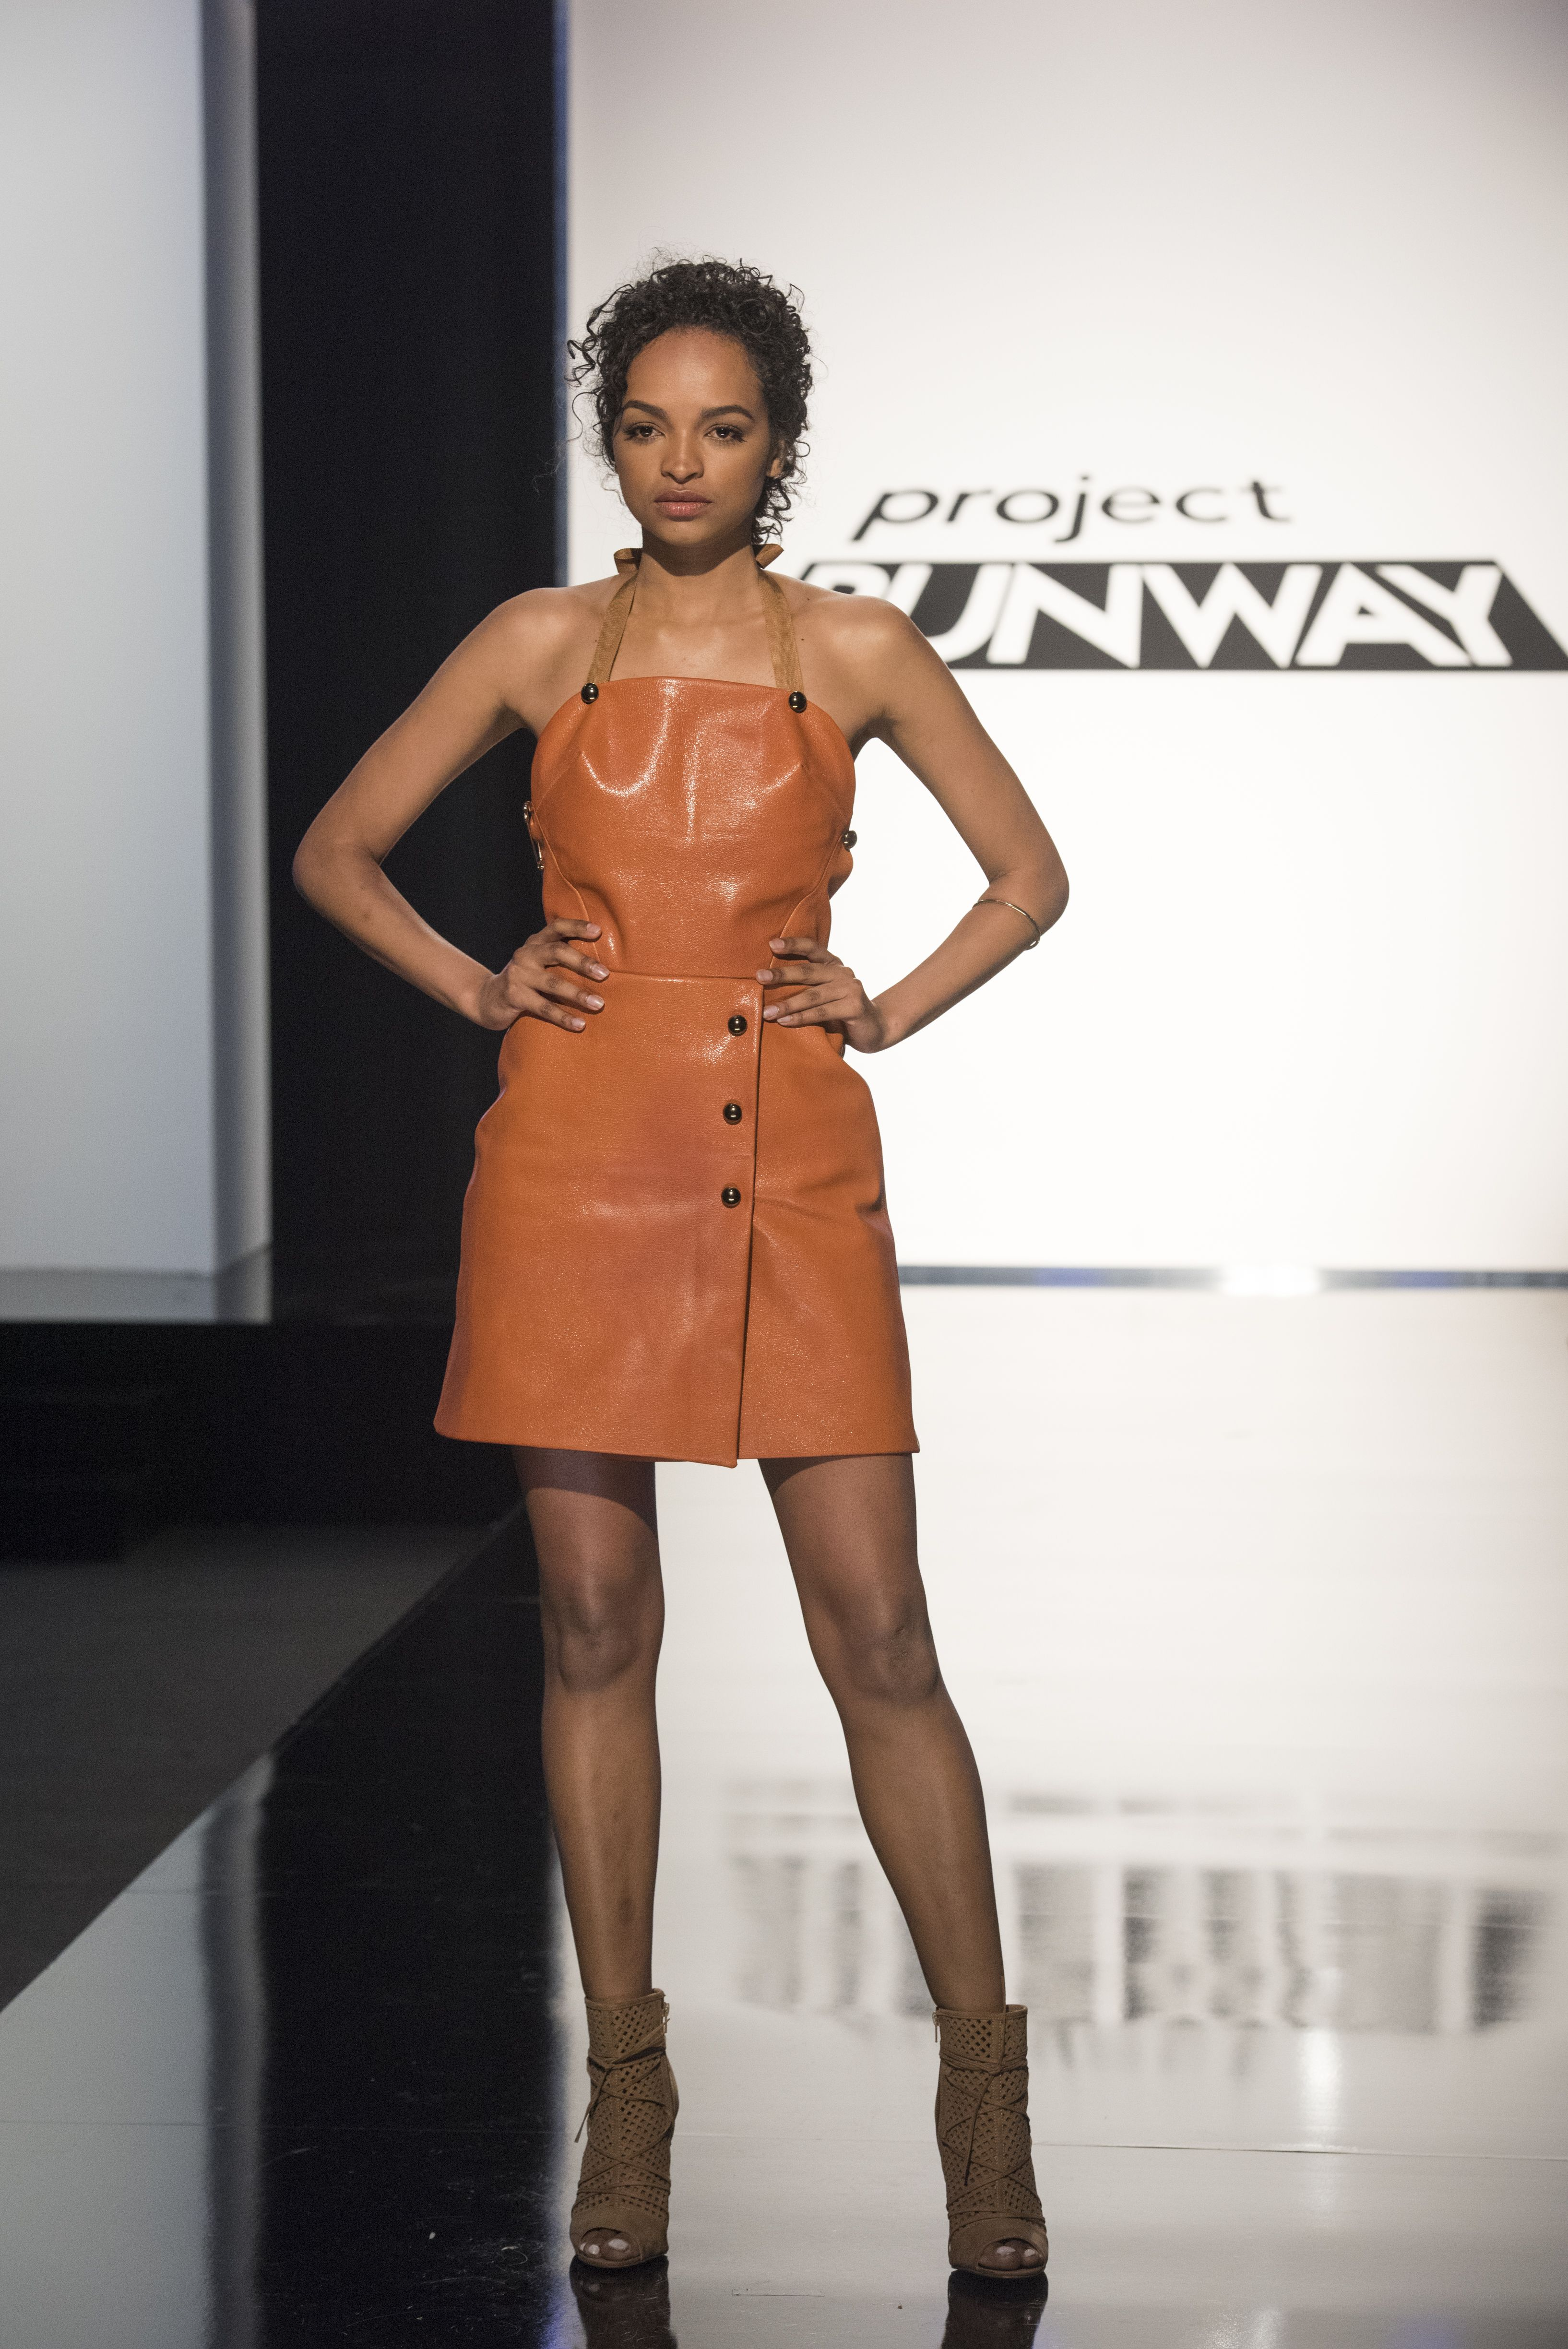 39 project runway 39 recap the cocktail dress is everyone 39 s kryptonite project runway. Black Bedroom Furniture Sets. Home Design Ideas